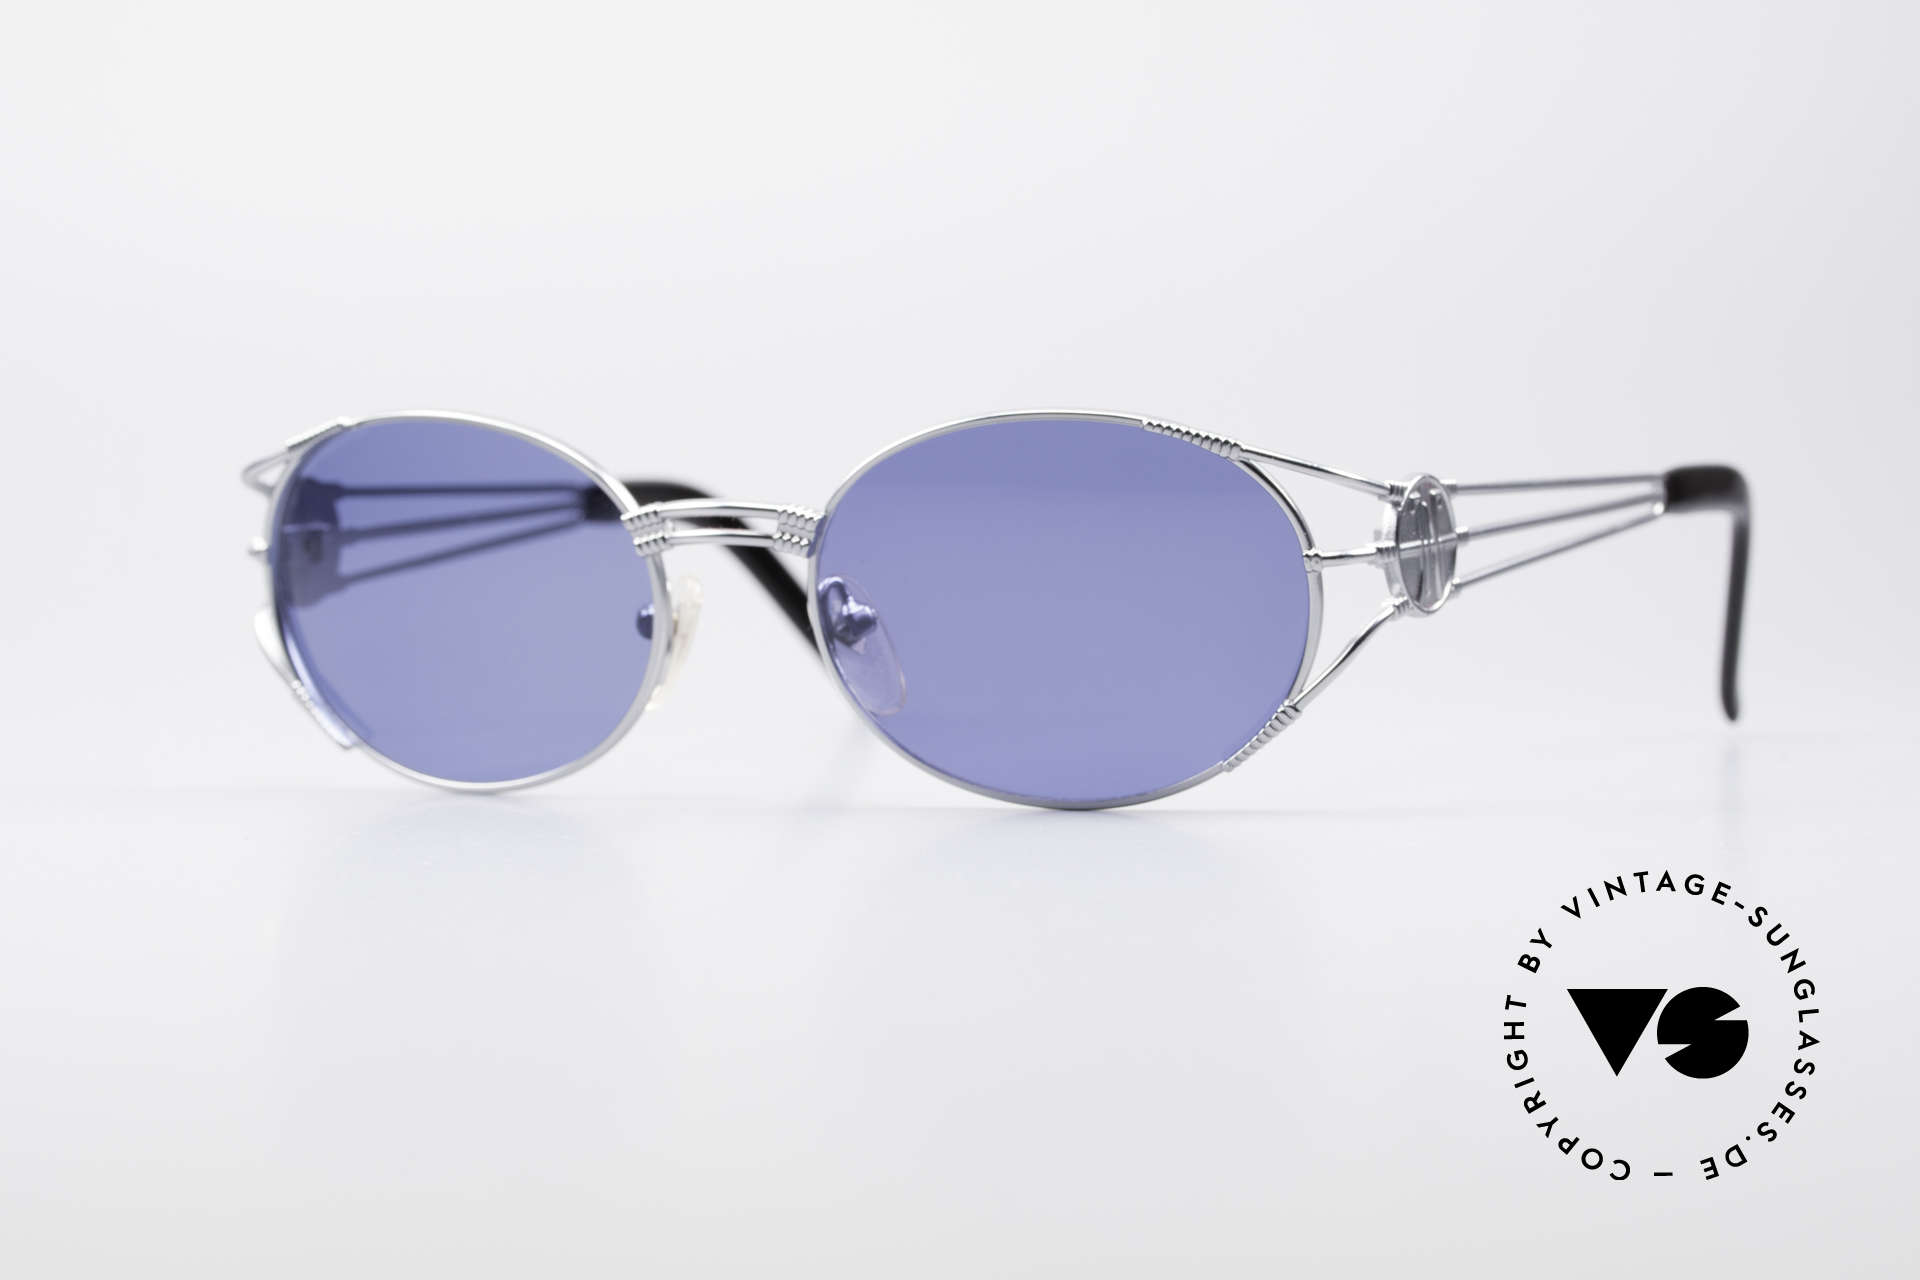 Jean Paul Gaultier 58-5106 JPG Oval Steampunk Shades, valuable and creative Jean Paul Gaultier design, Made for Men and Women